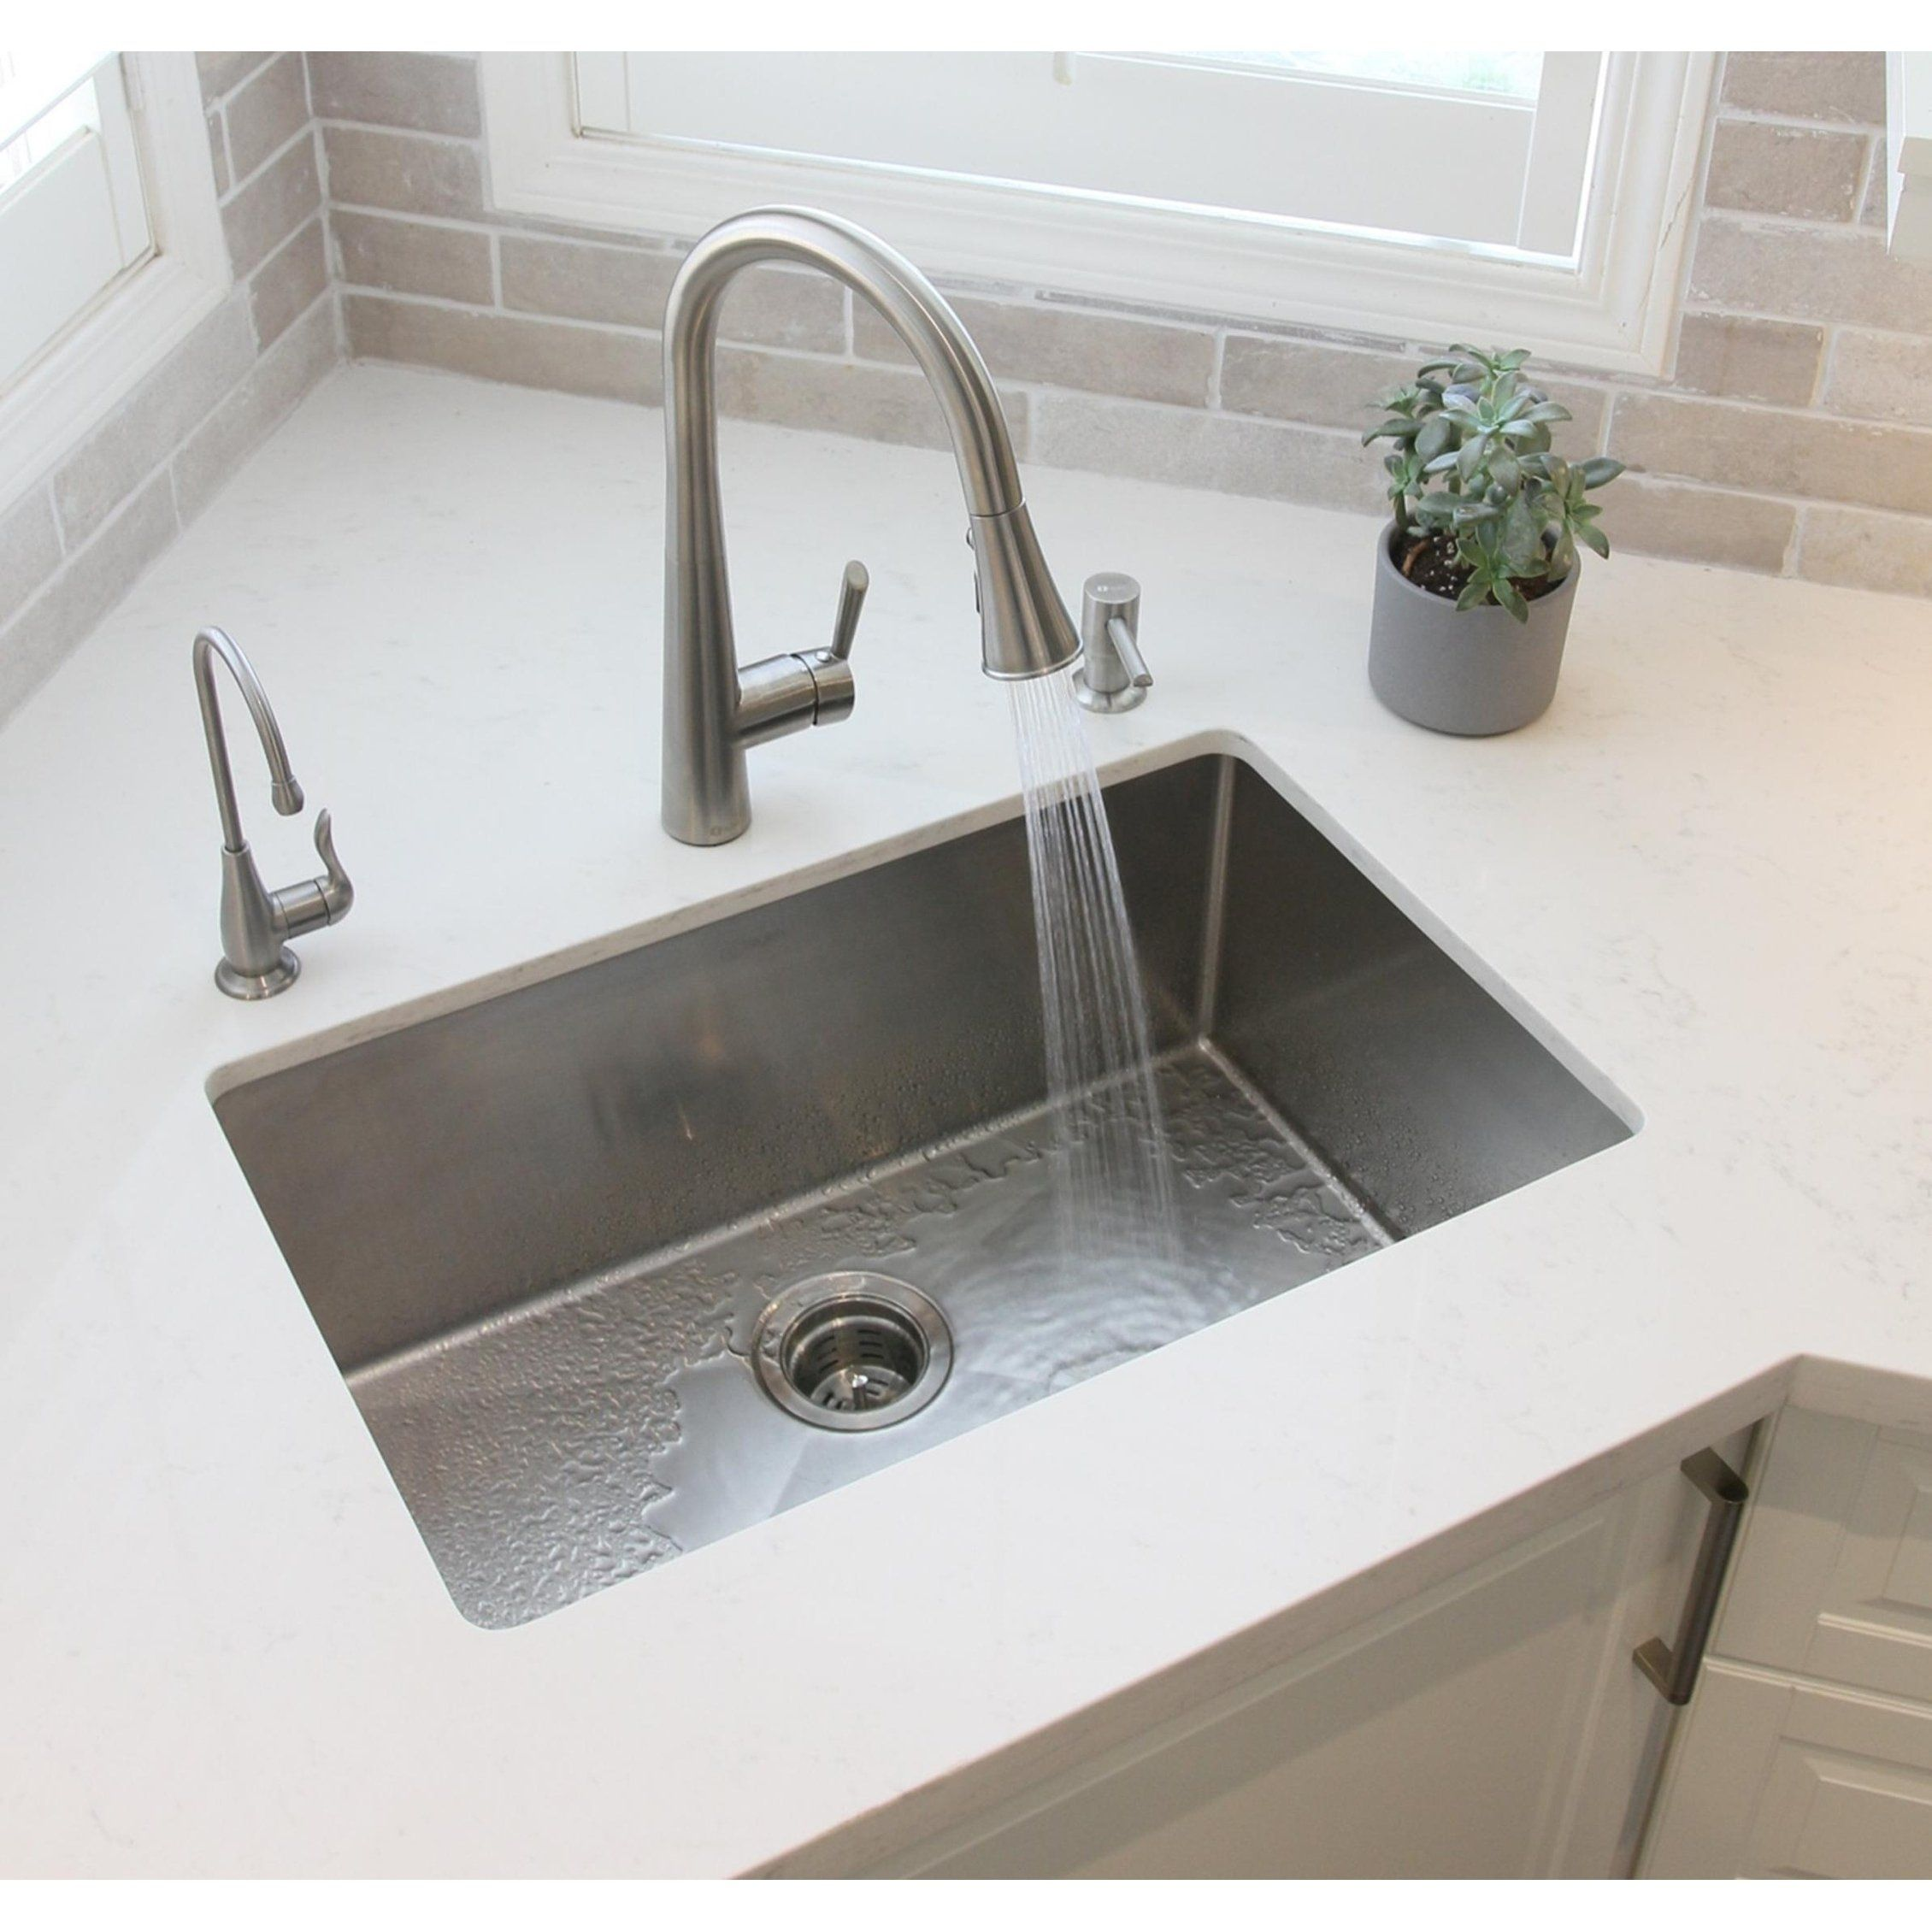 28 Undermount Single Bowl Kitchen Sink 18g Stainless Steel S 306